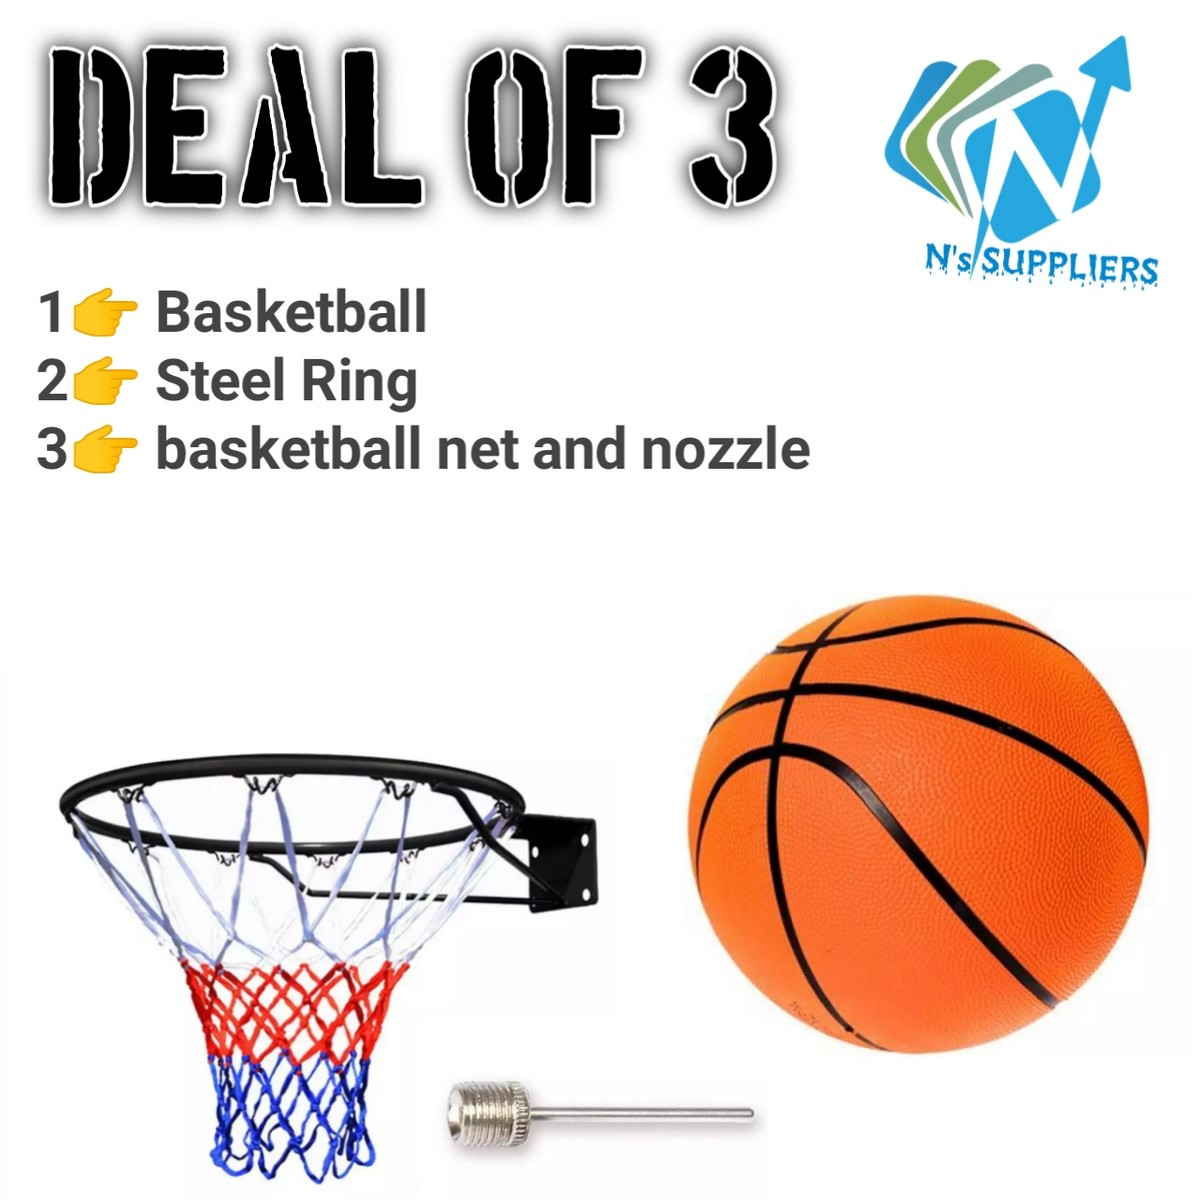 Basket Ball With free Net and steal ring- Standard Size - Multicolor